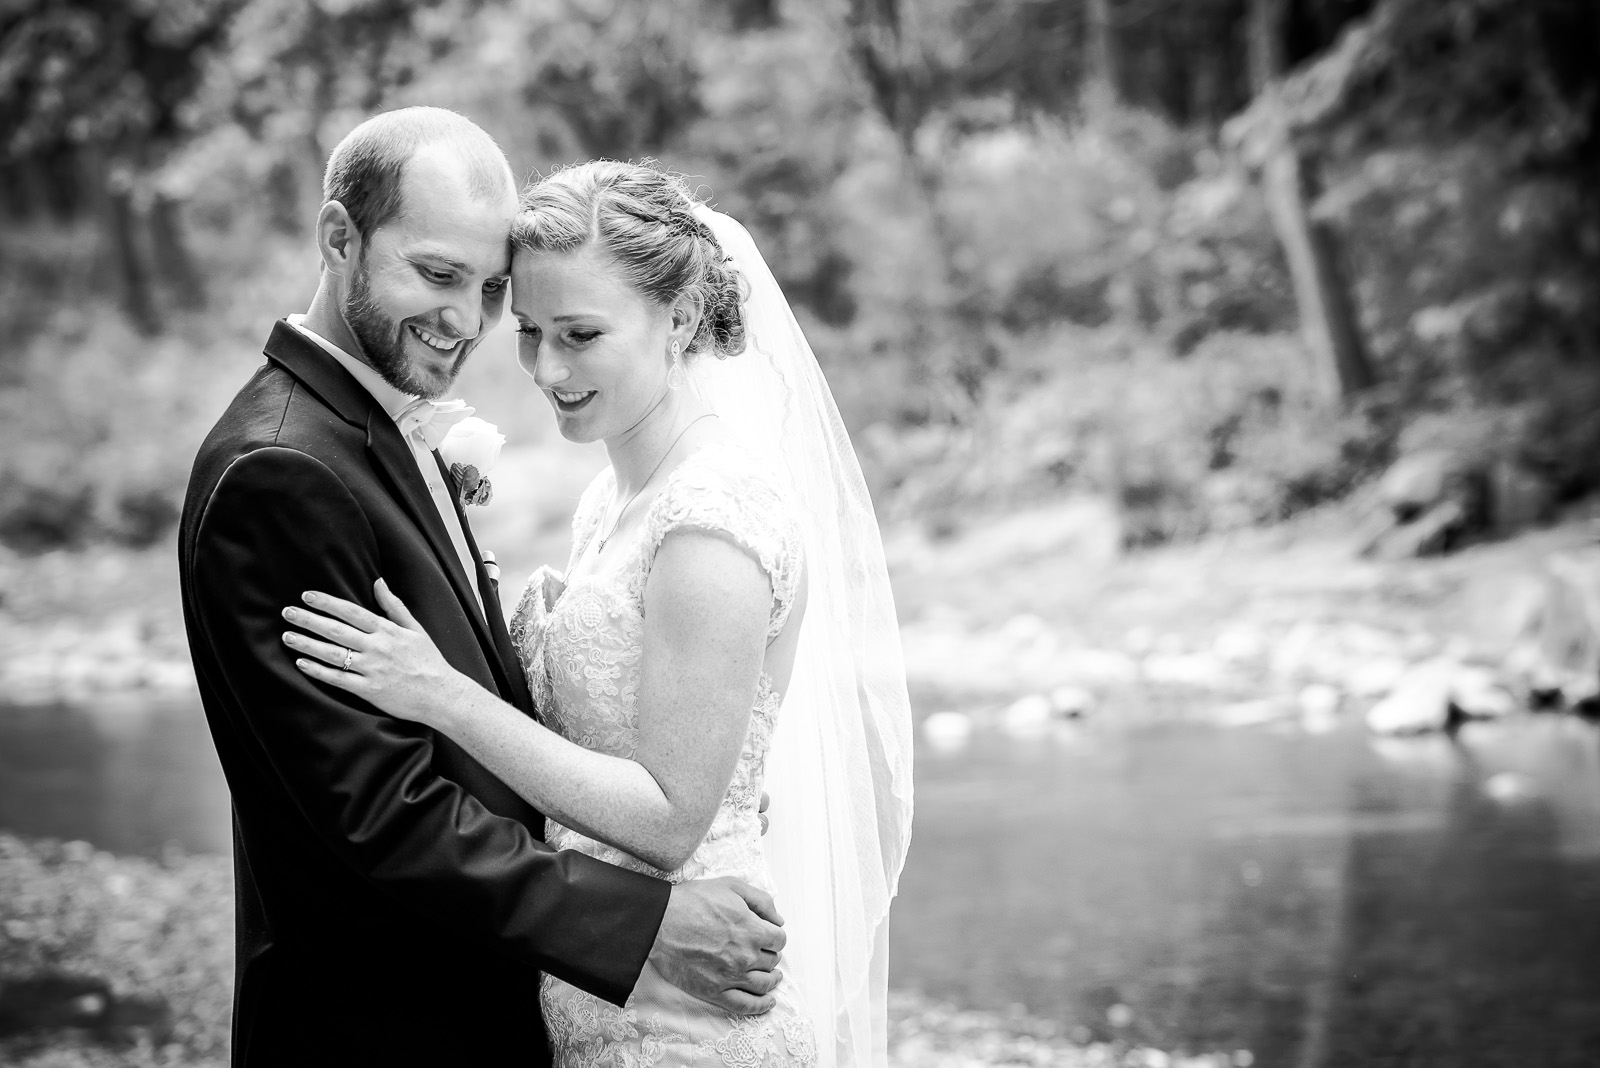 eric_and_christy_photographers_blog_wedding_katieandy-16